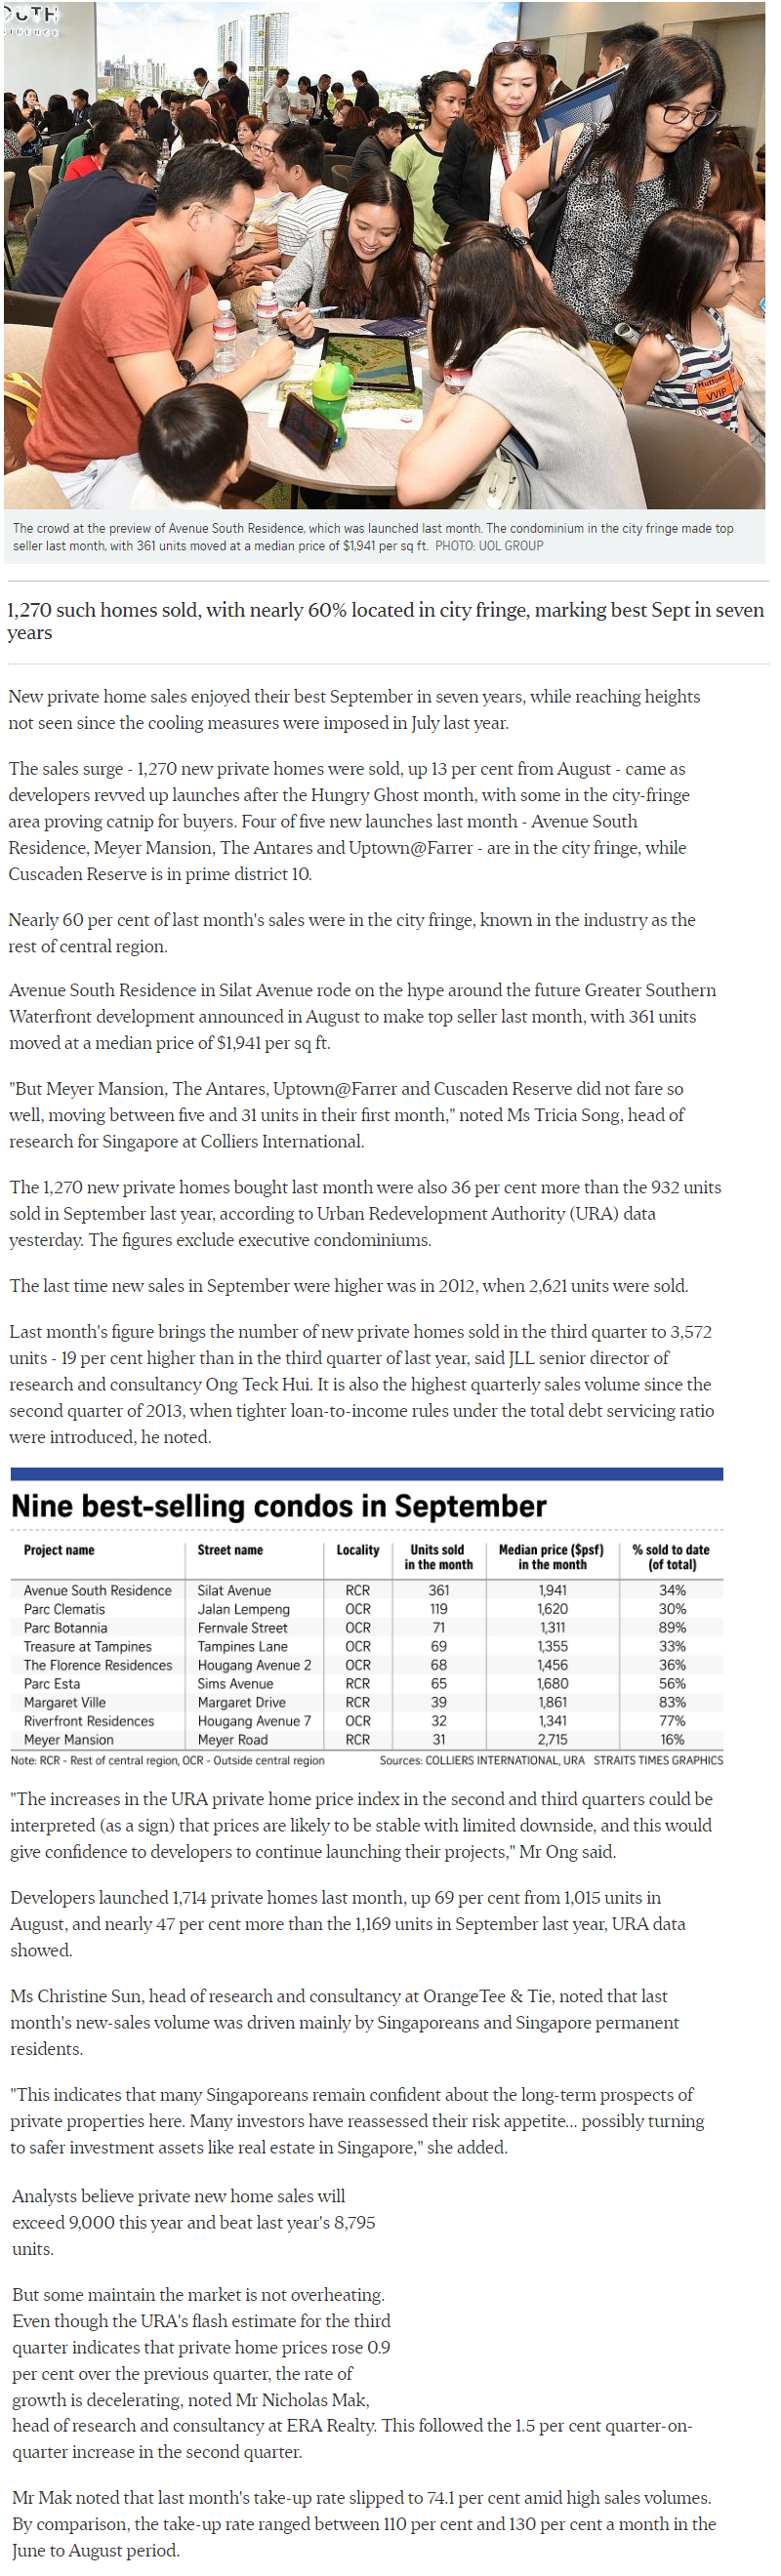 Canninghill Piers - New private Home Sales Hit A Hight In September